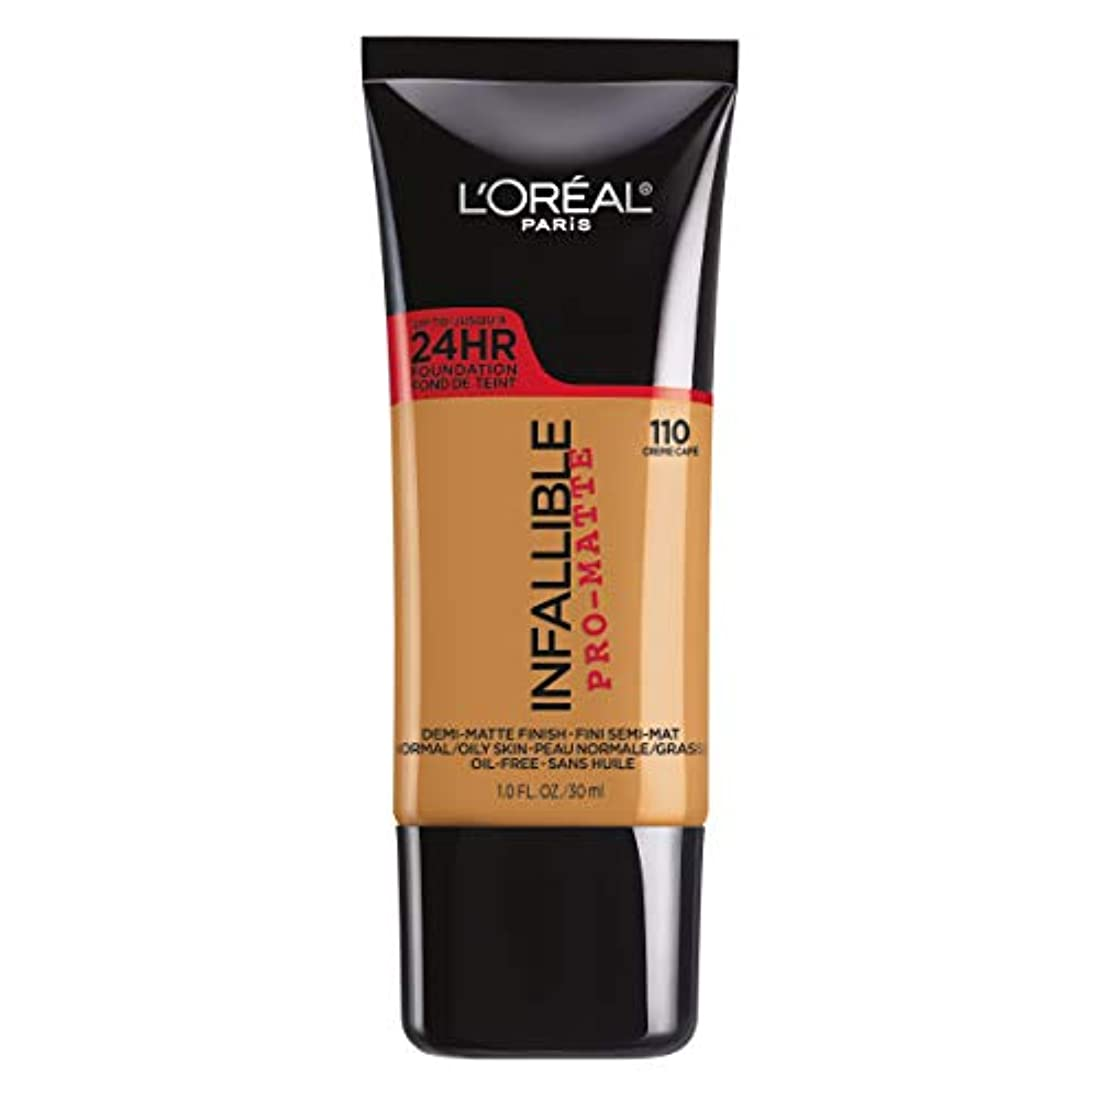 句座る錆びL'Oreal Paris Infallible Pro-Matte Foundation Makeup, 110 Crème Café, 1 fl. oz[並行輸入品]